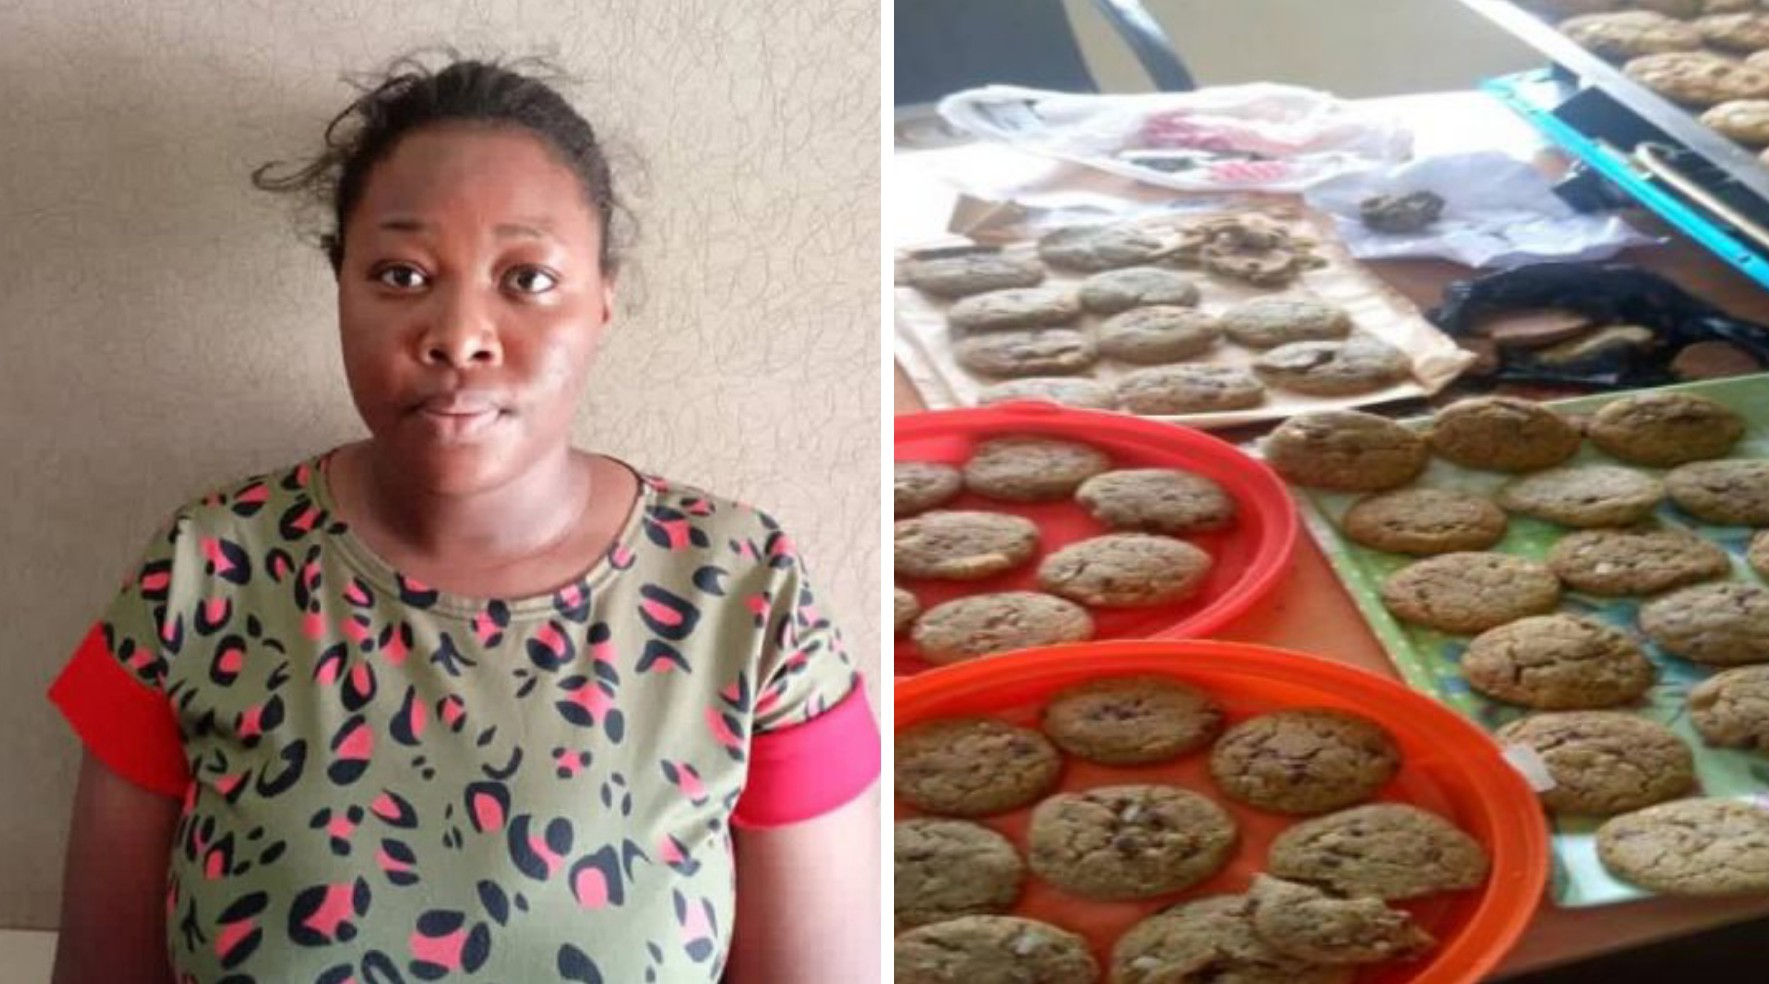 Abuja: NDLEA arrest undergraduate who produces, sell drugged cookies to school children